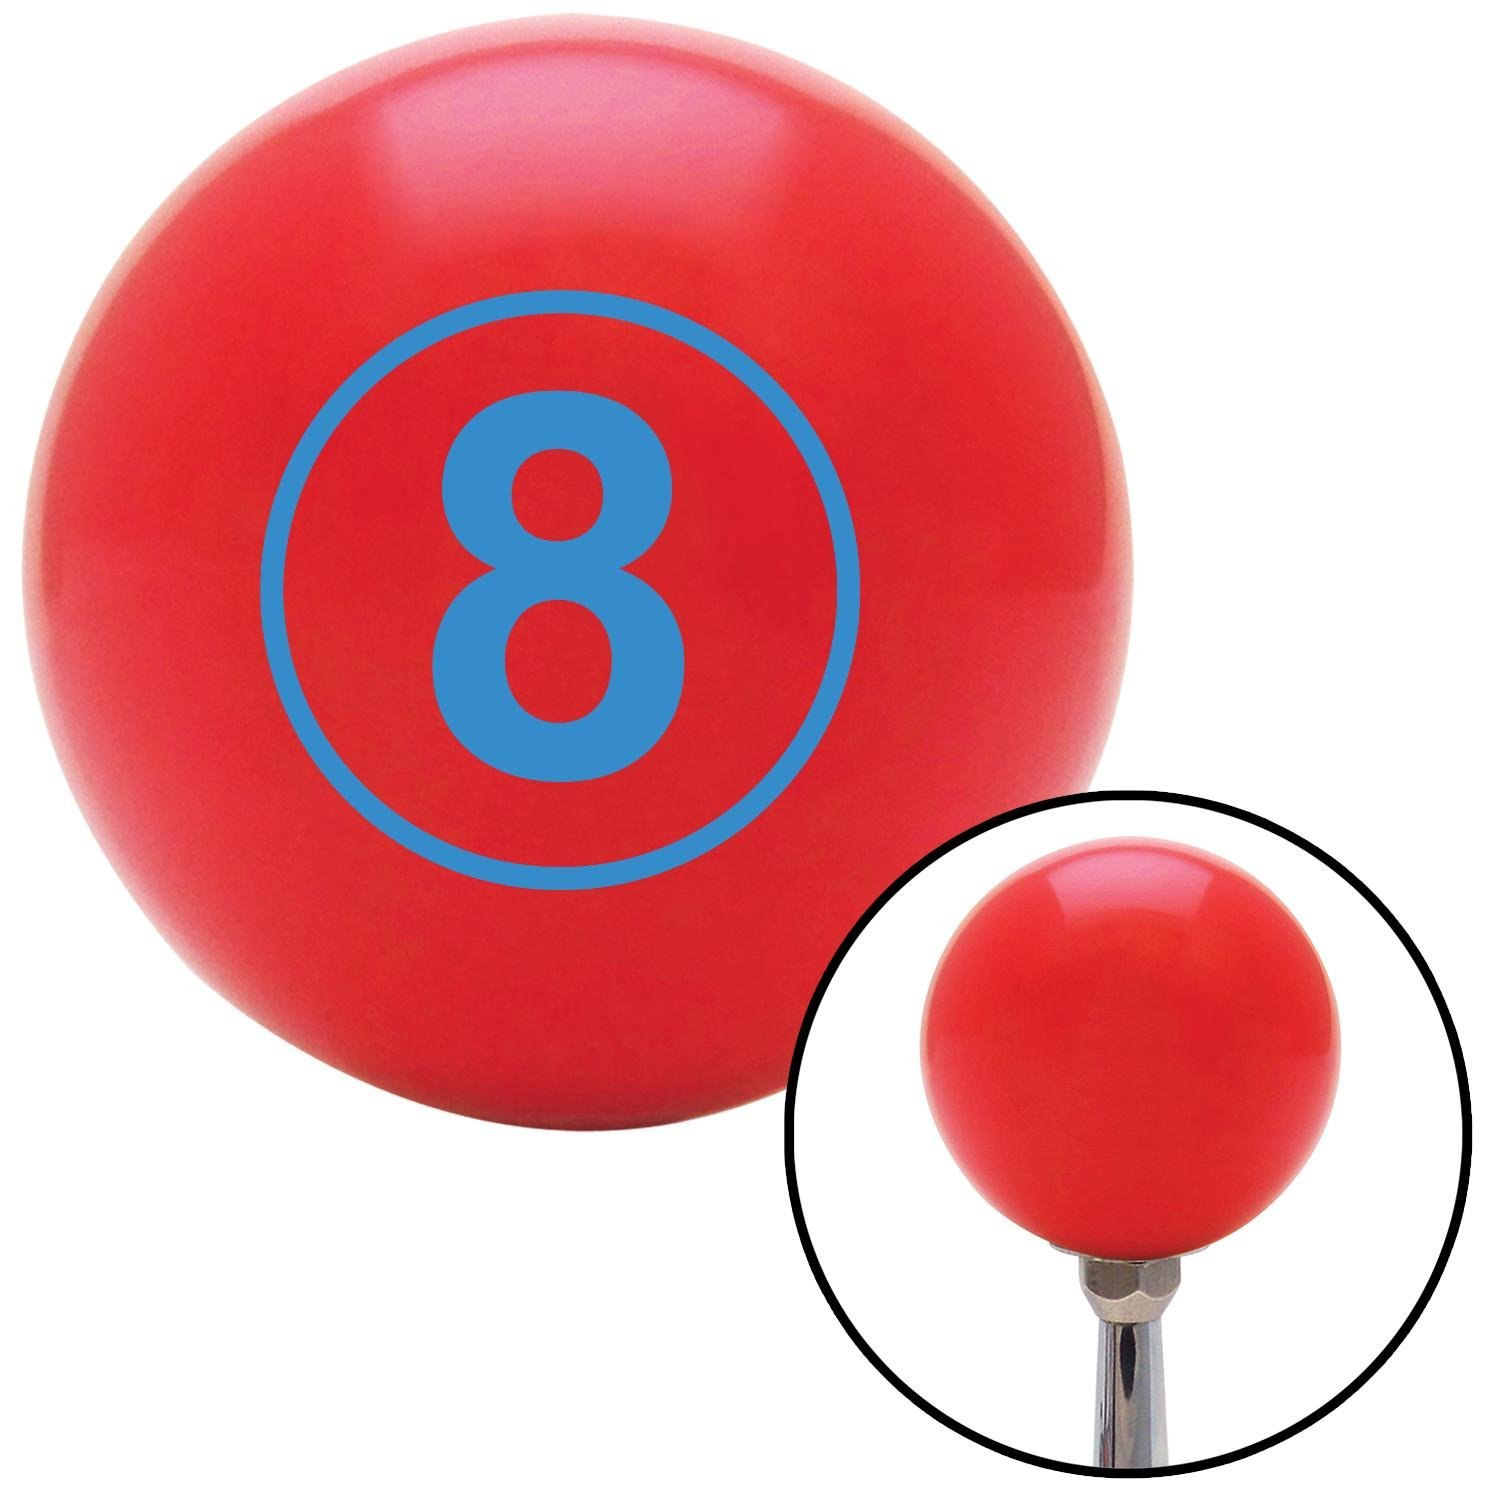 Blue Ball 8 American Shifter 94538 Red Shift Knob with M16 x 1.5 Insert